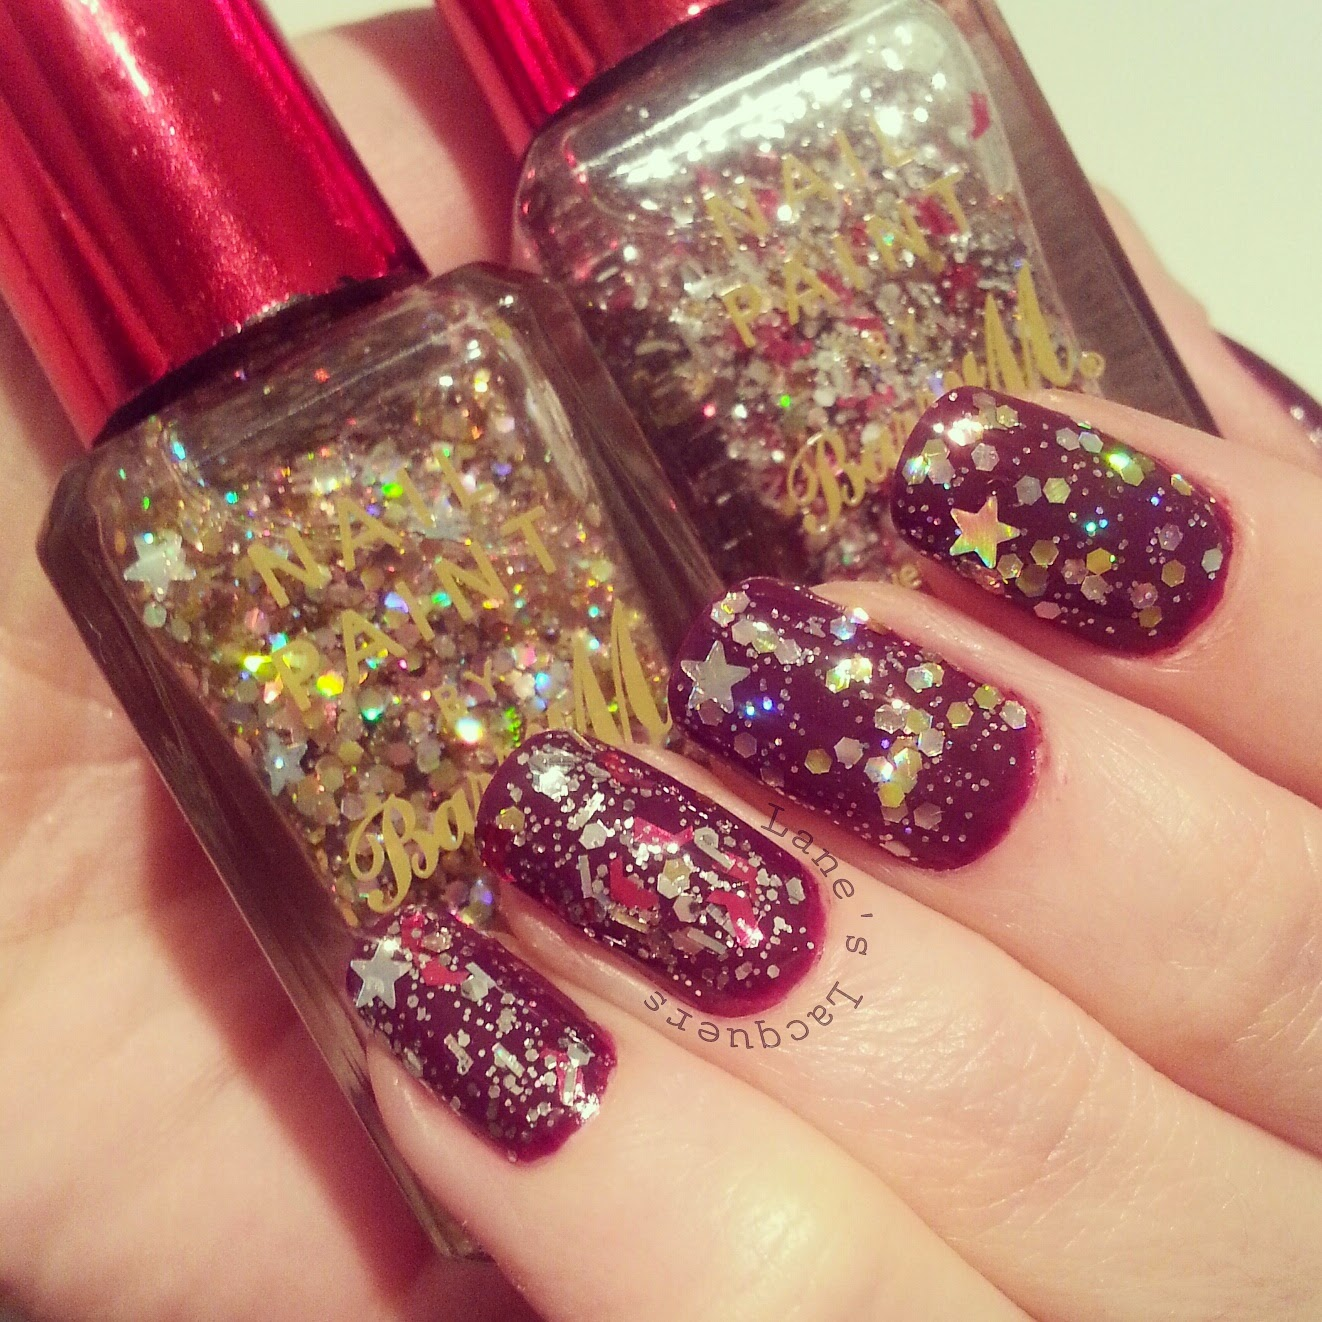 barry-m-starlight-moonlight-berry-cosmo-swatch-nails (2)